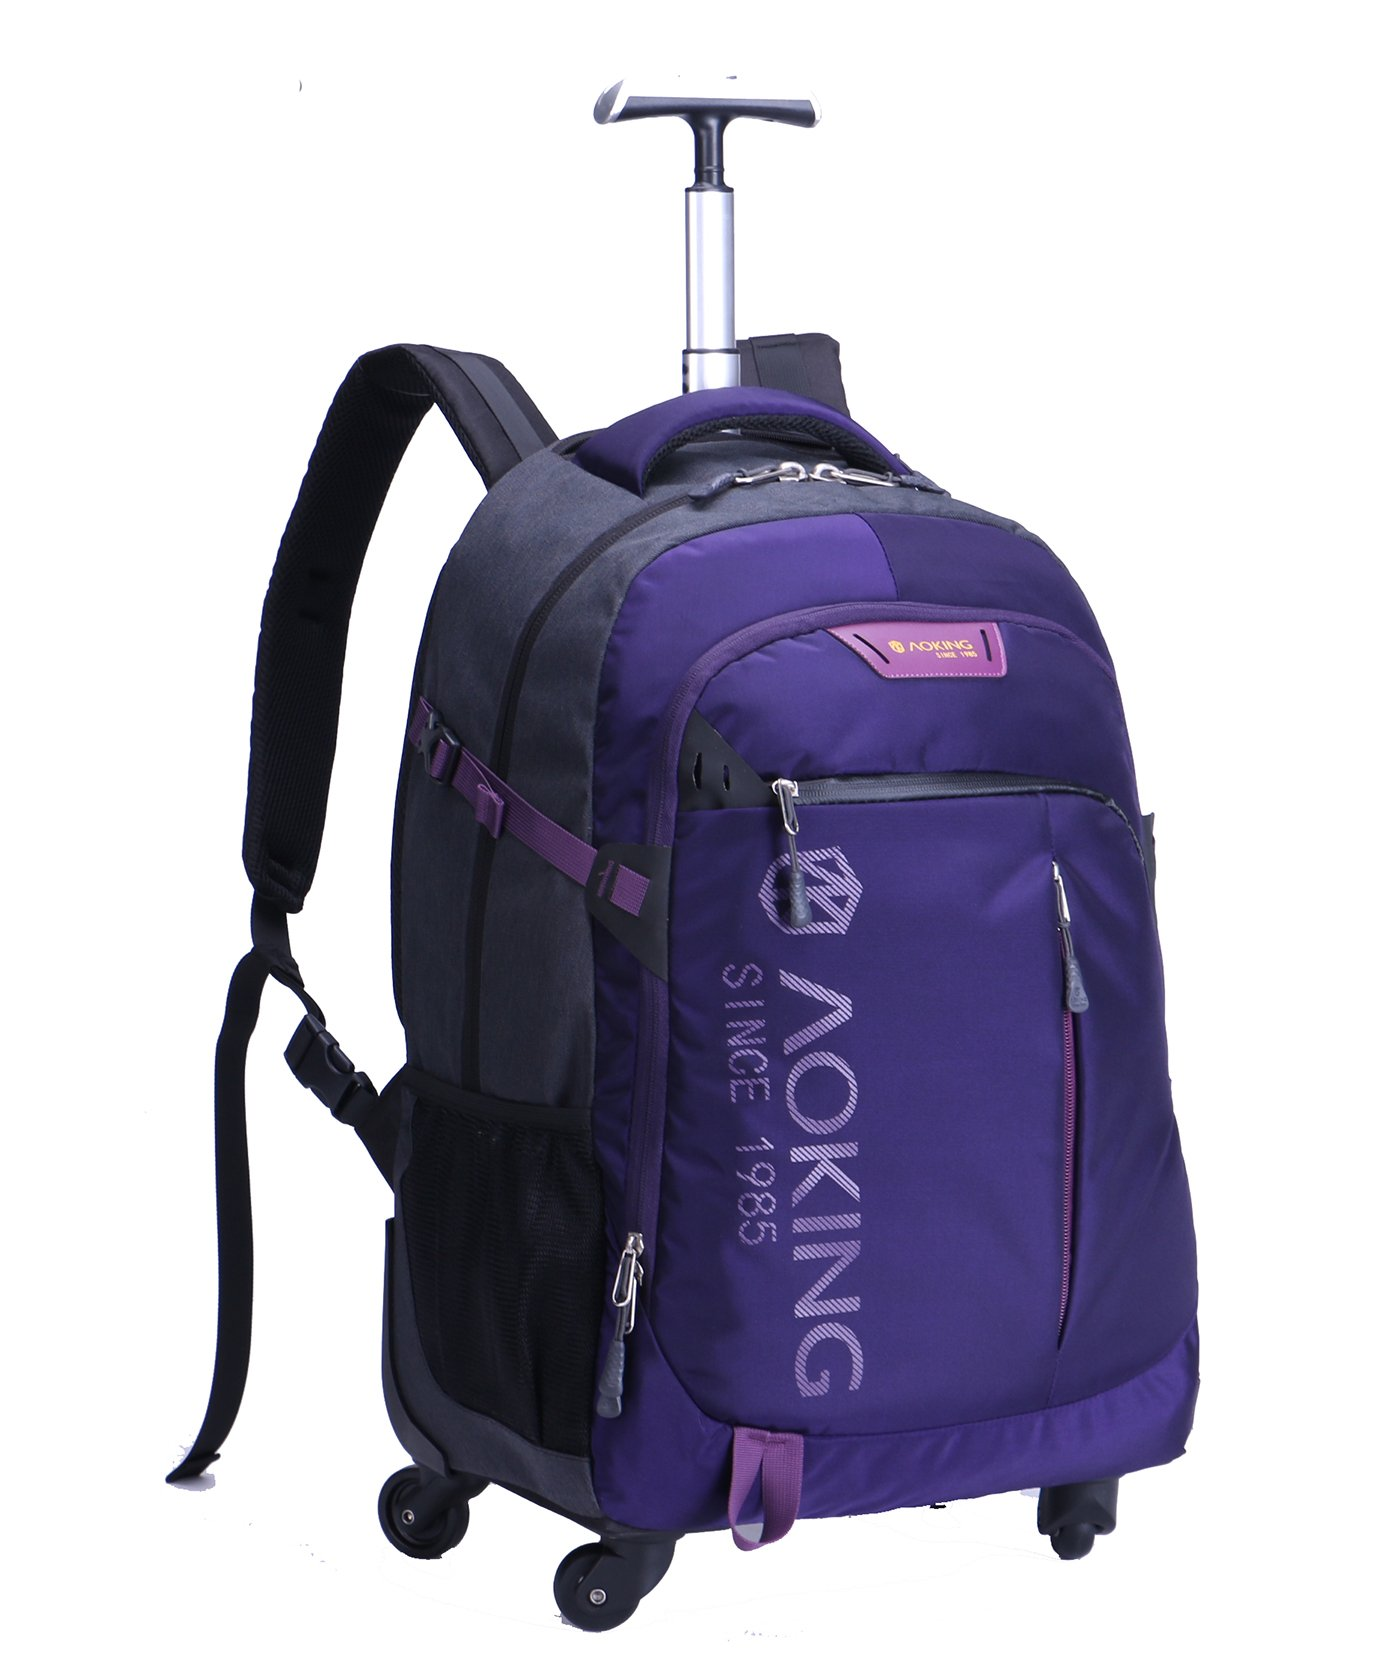 AOKING 20/22 Inch Water Resistant Travel School Business Rolling Wheeled Backpack with Laptop Compartment (Purple, 20 Inch) by JOLLYCHIC (Image #2)